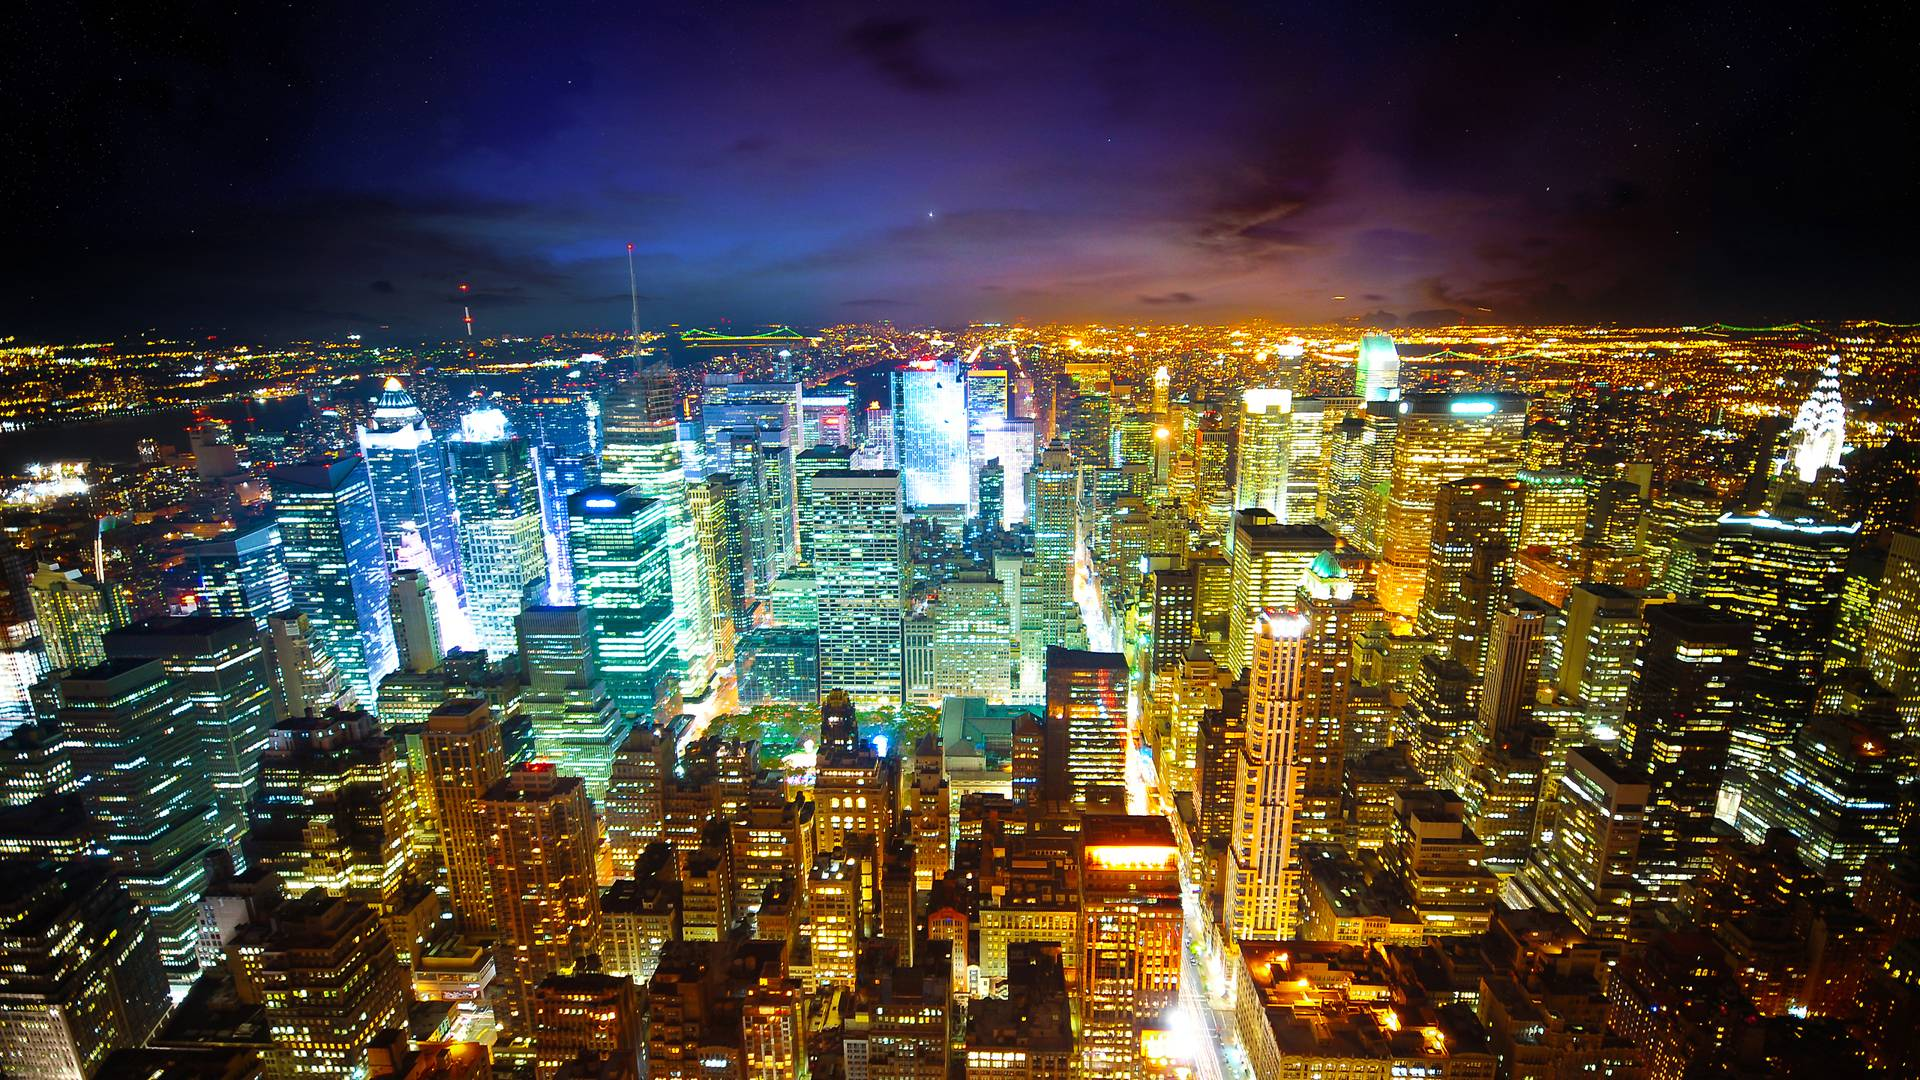 City Wallpapers Big Pack 2 Full HD Free Download 2021